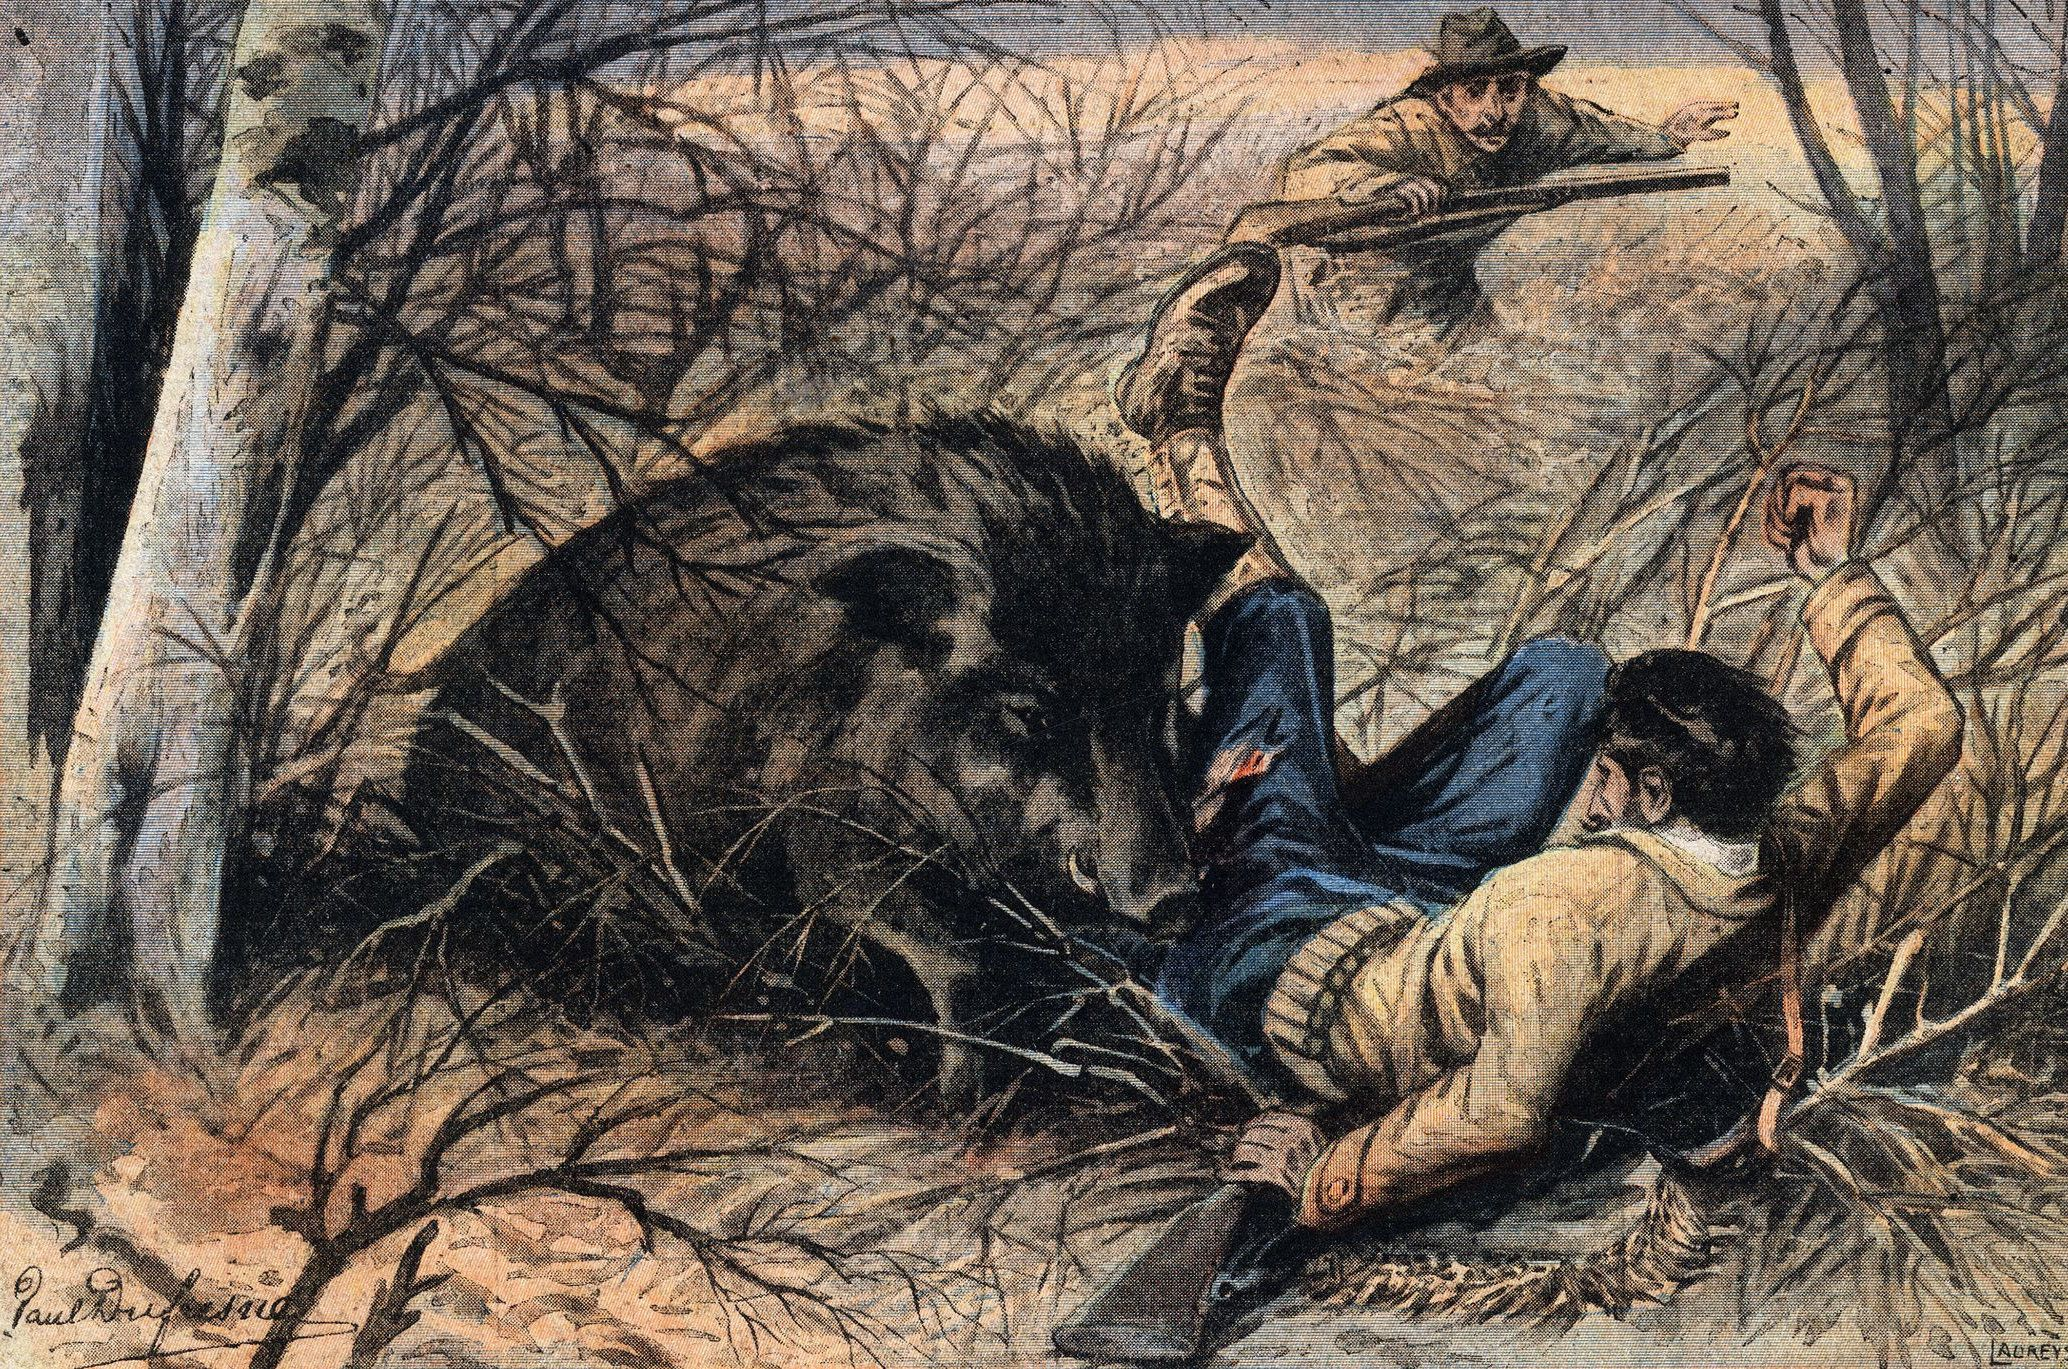 Was a 1,800-Lb. Wild Boar Really Shot in Conroe, Texas? Giant Wild Boars In Asia